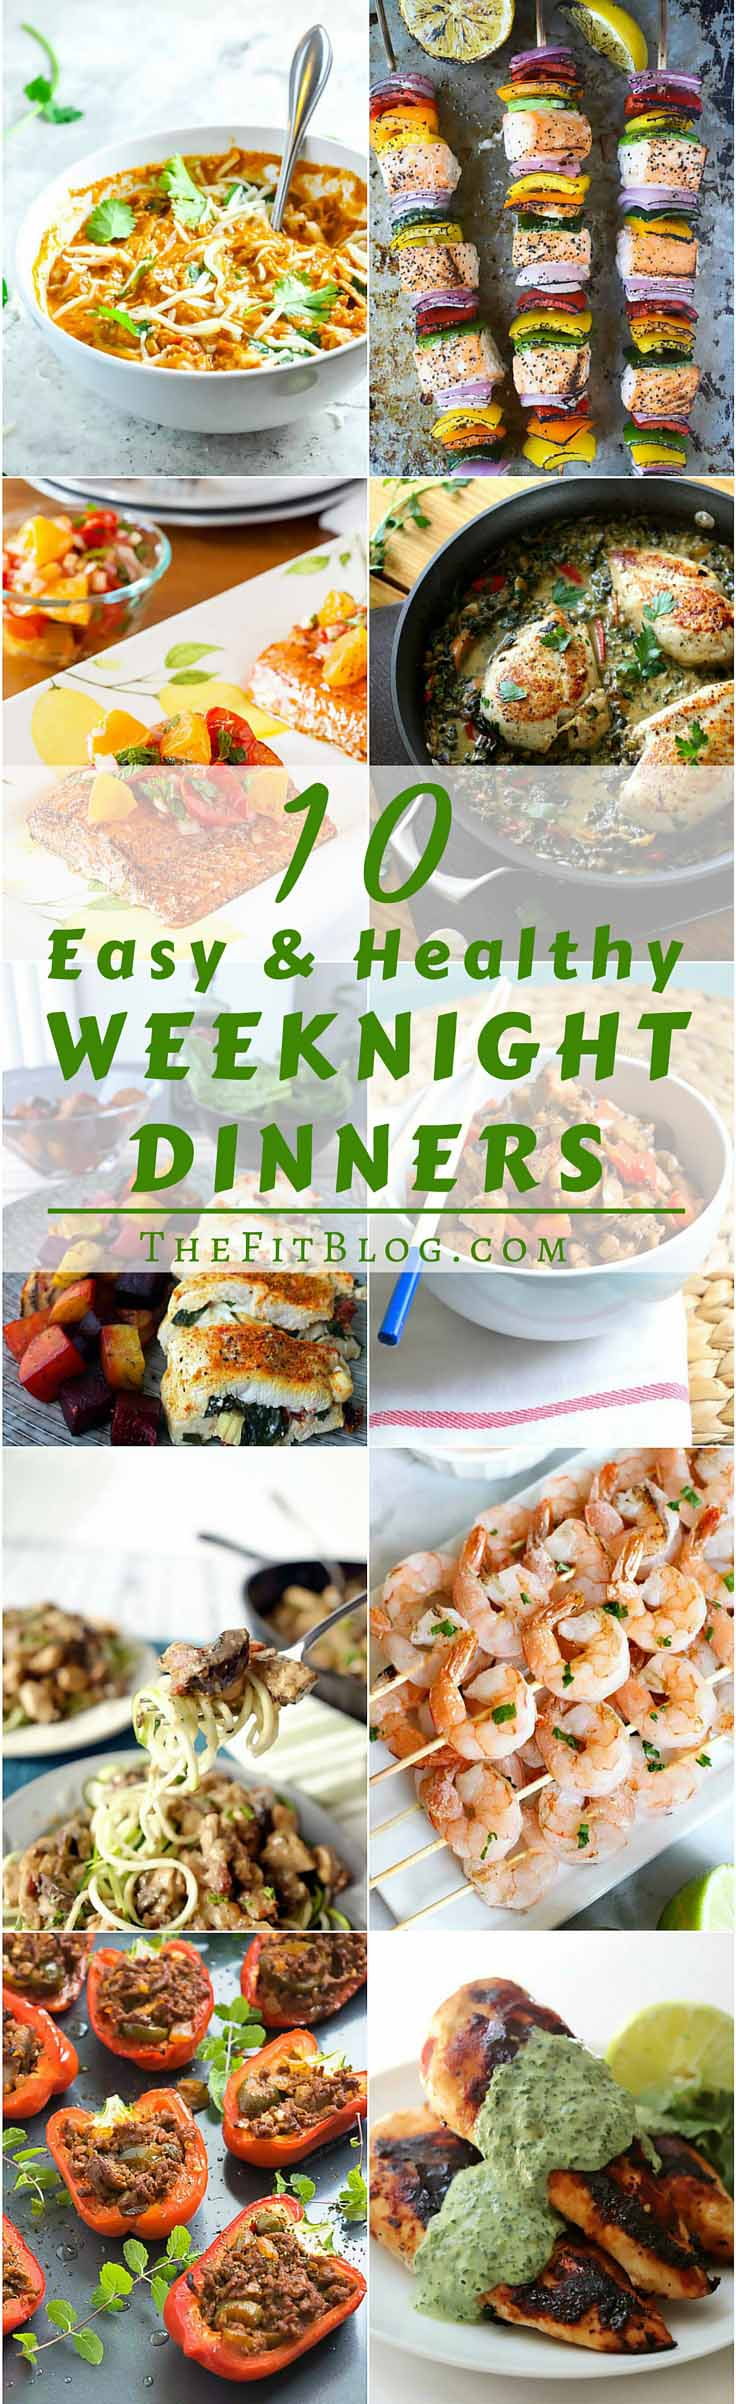 10 Healthy And Easy Weeknight Dinners – 10 recipes that are high in protein, moderate in carbs and fat, delicious, and ready in less than 30 min.